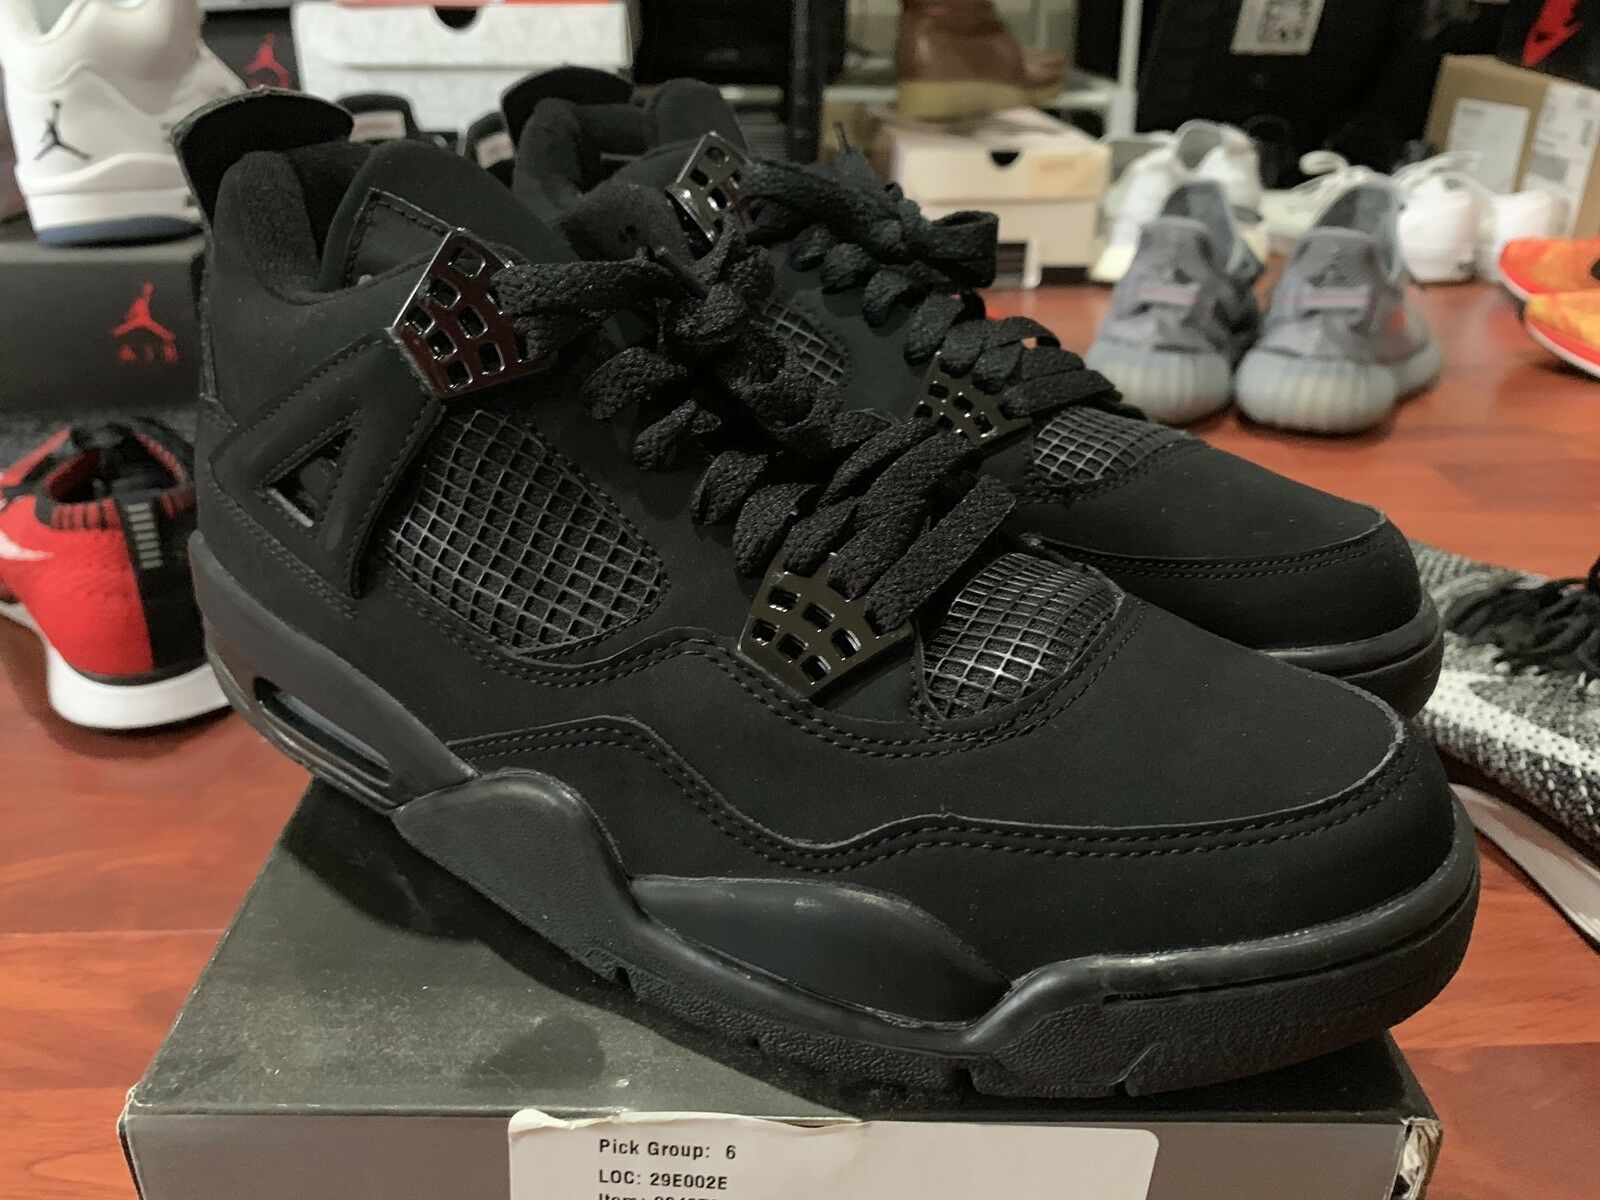 DS Nike Air Jordan IV 4 BLACK CAT Size 8 2006 Retro 308497-002 Rare New